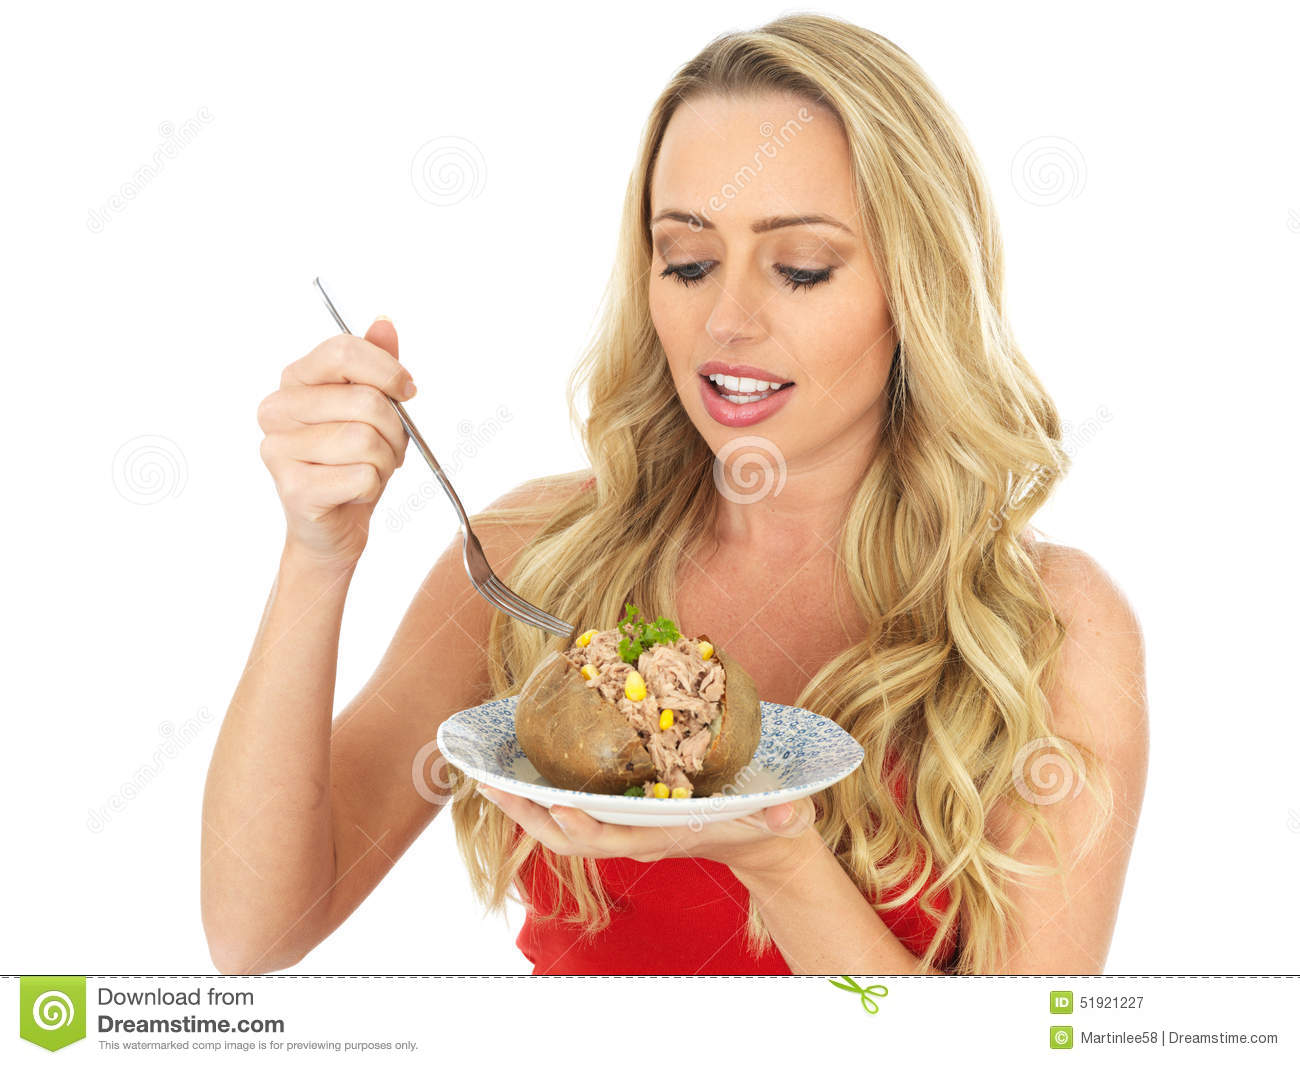 Young Woman Eating A Baked Potato With Tuna And Sweetcorn